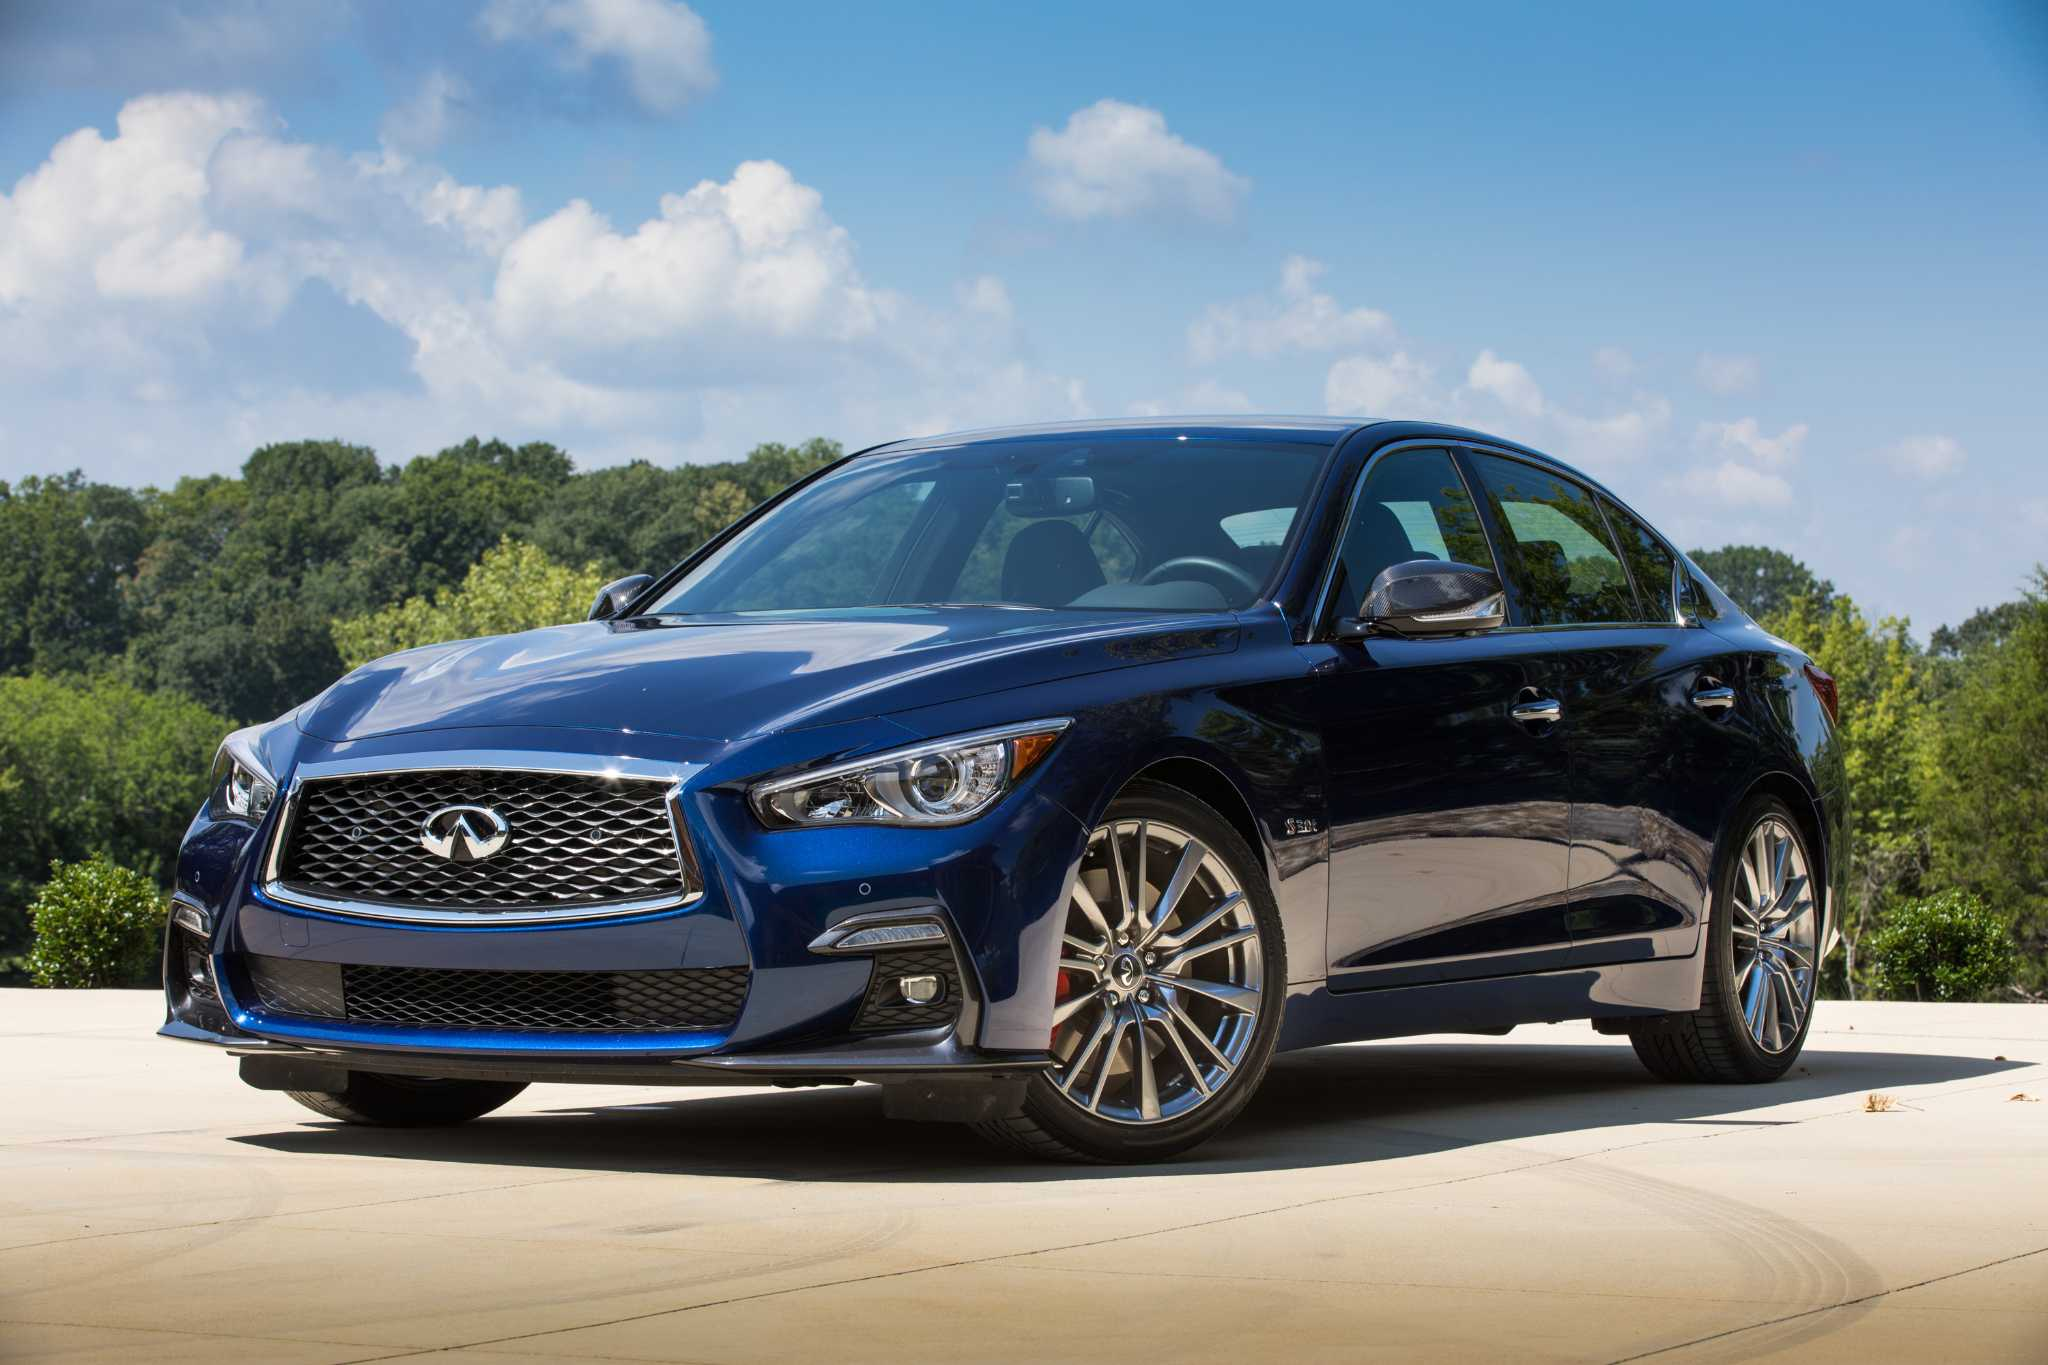 Infiniti's best-seller, the Q50 sedan, refined for 2018